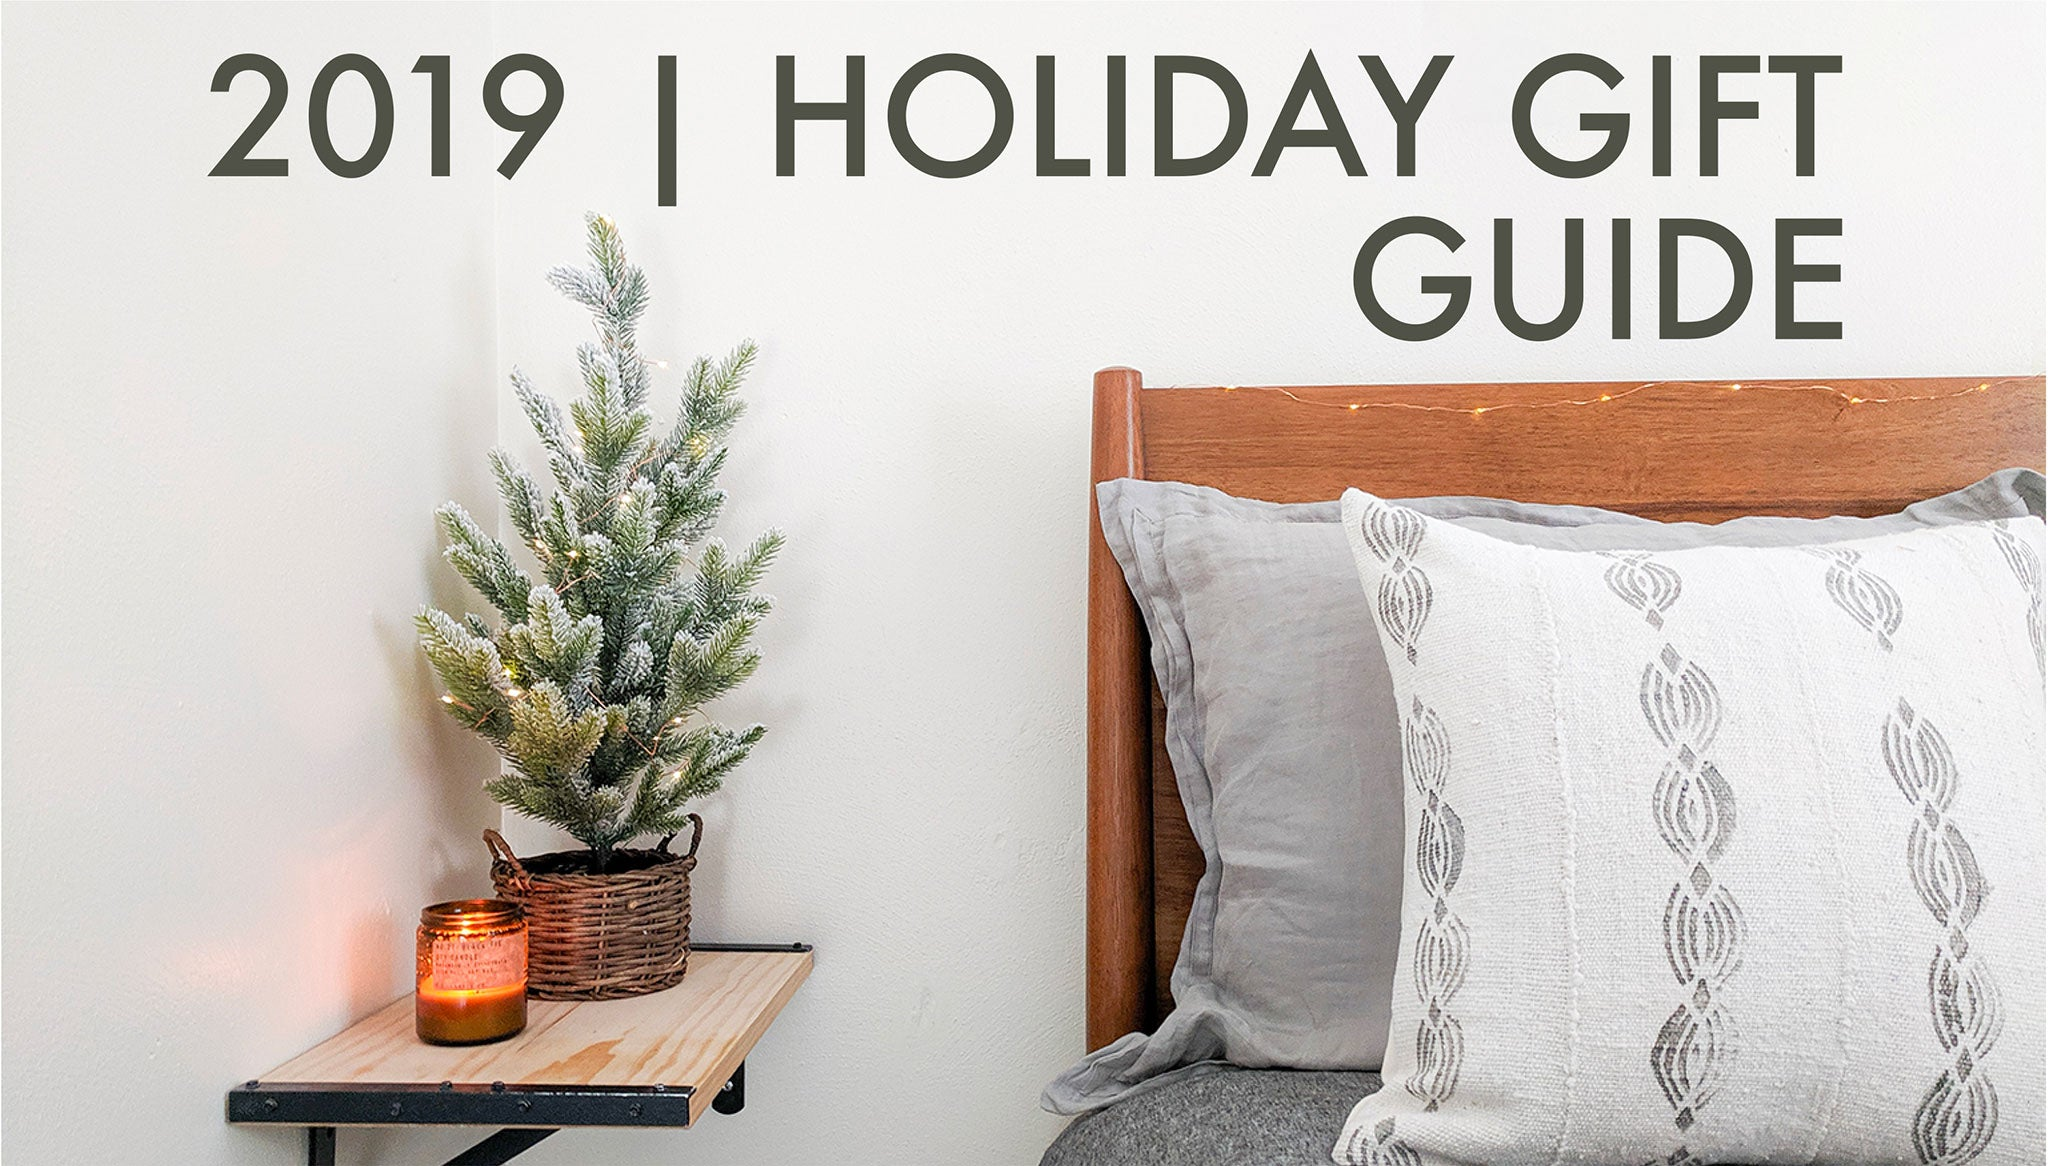 2019 Holiday Gift Guide by Colin and Finn with cream mud cloth pillow and amber glass soy candle